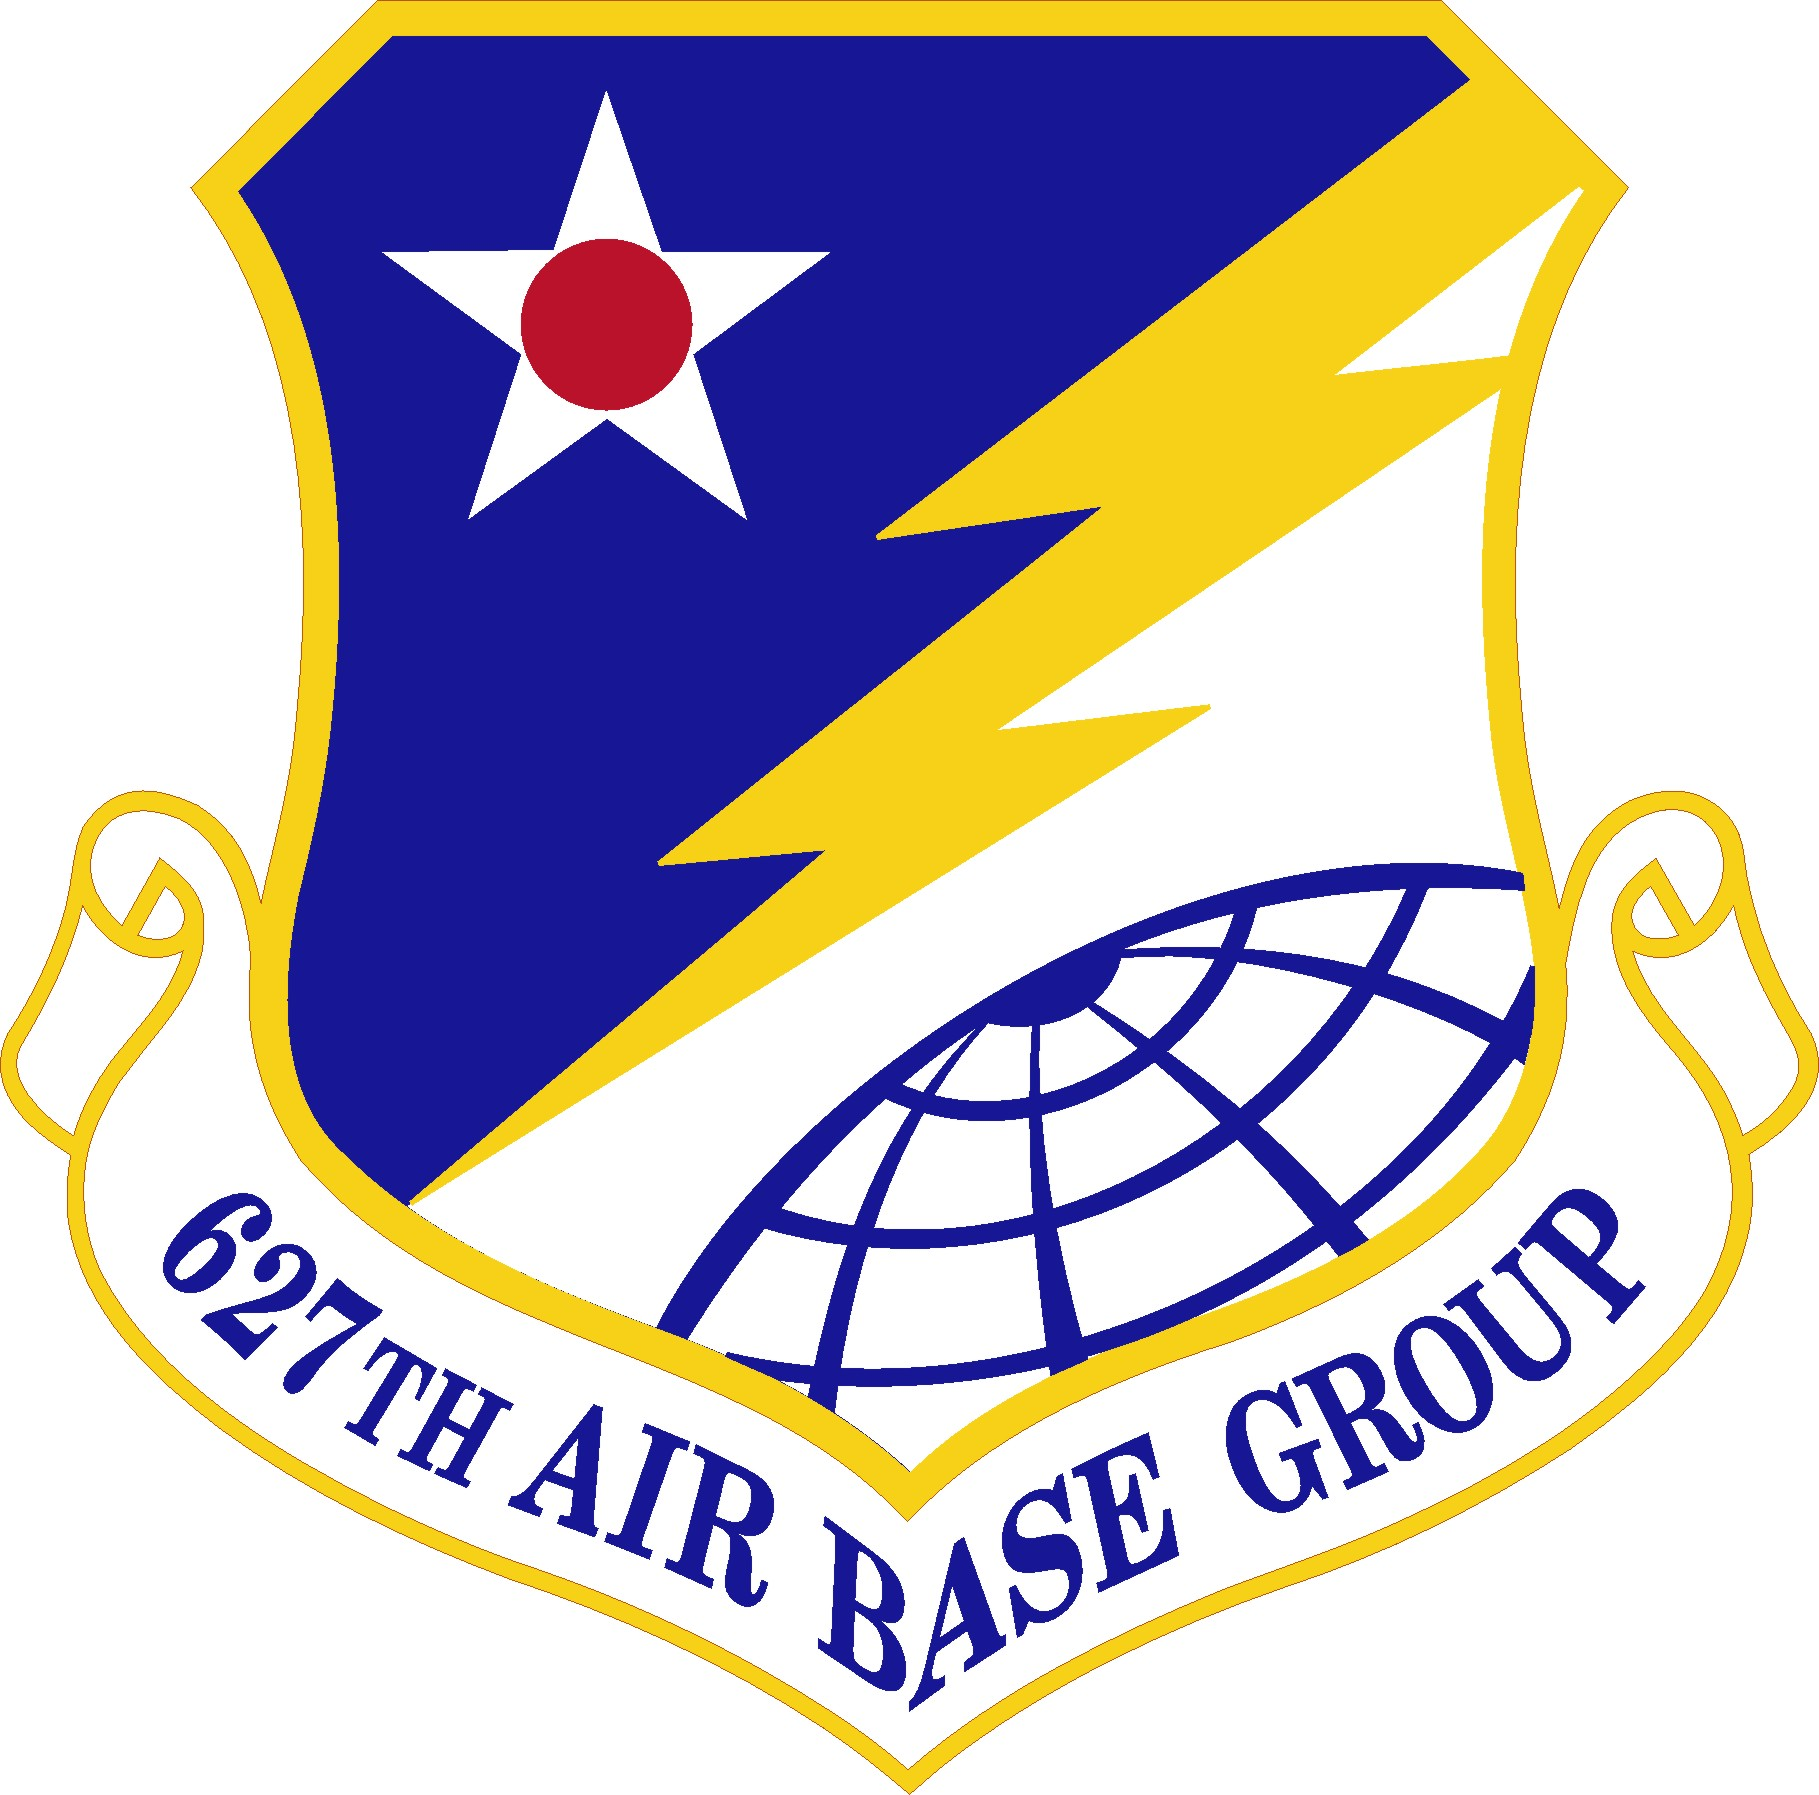 627th Air Base Group unit patch